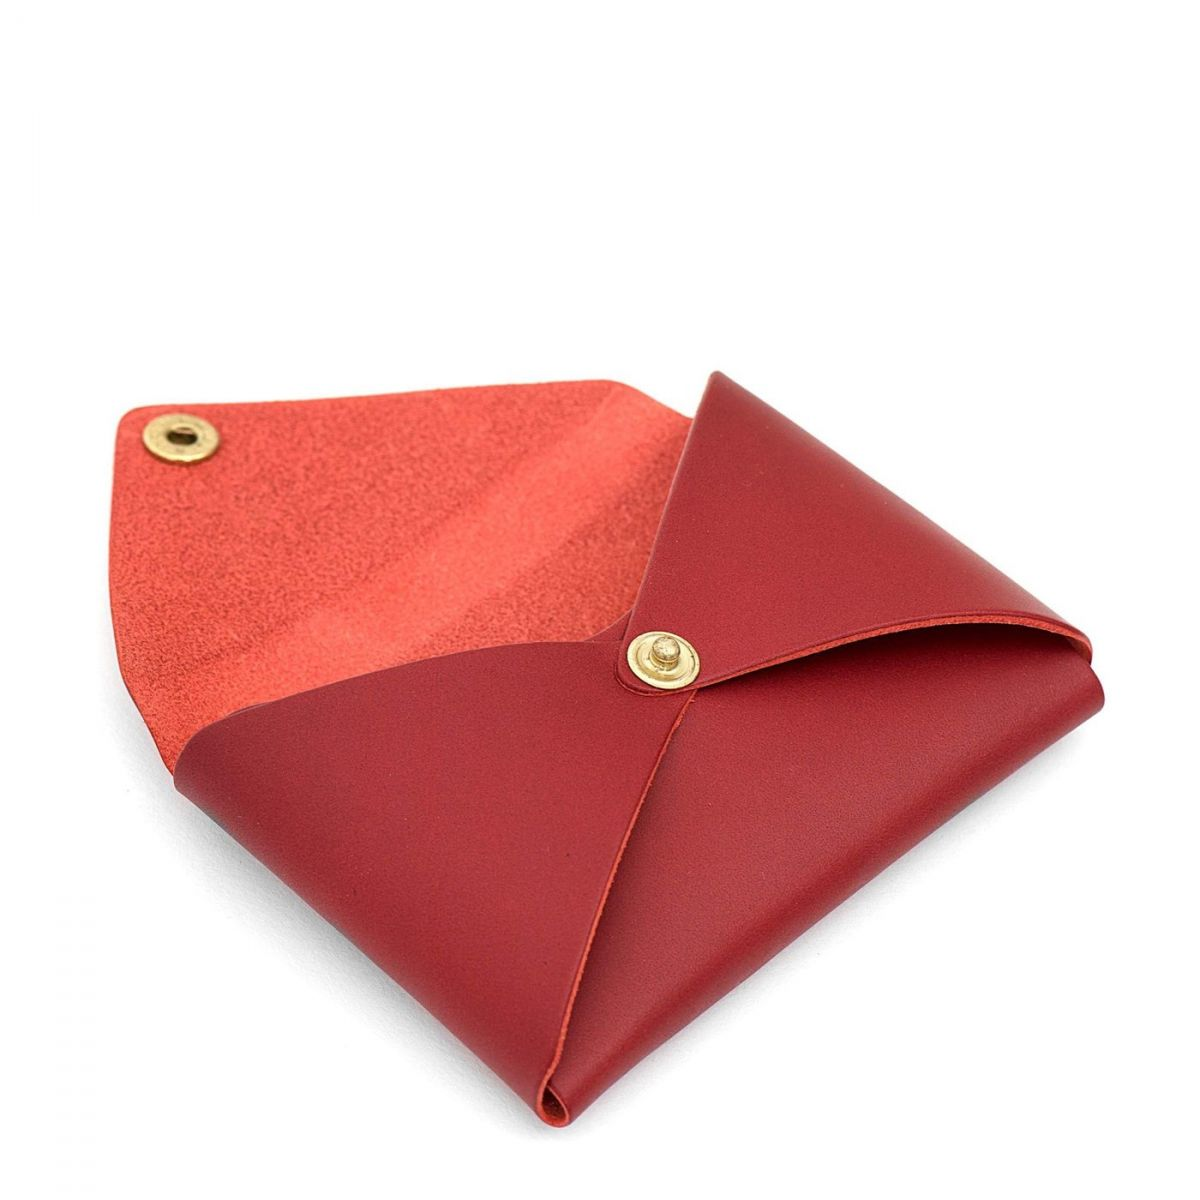 Women's Card Case  in Cowhide Double Leather SCC031 color Red Rubino | Details